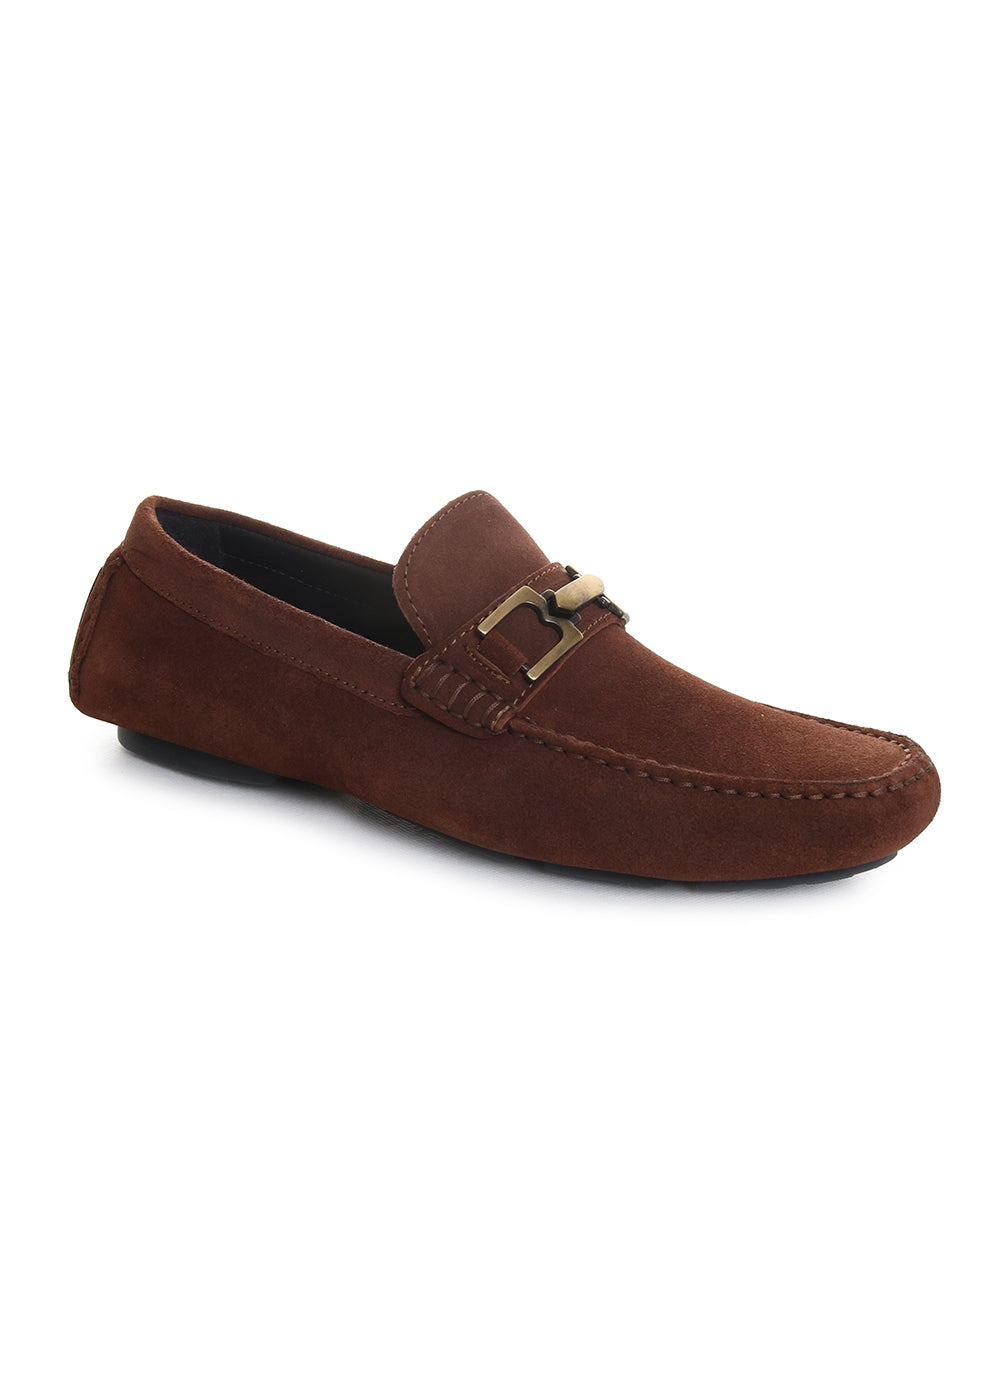 Rodd & Gunn Redwood Pass Moccasin in Chocolate